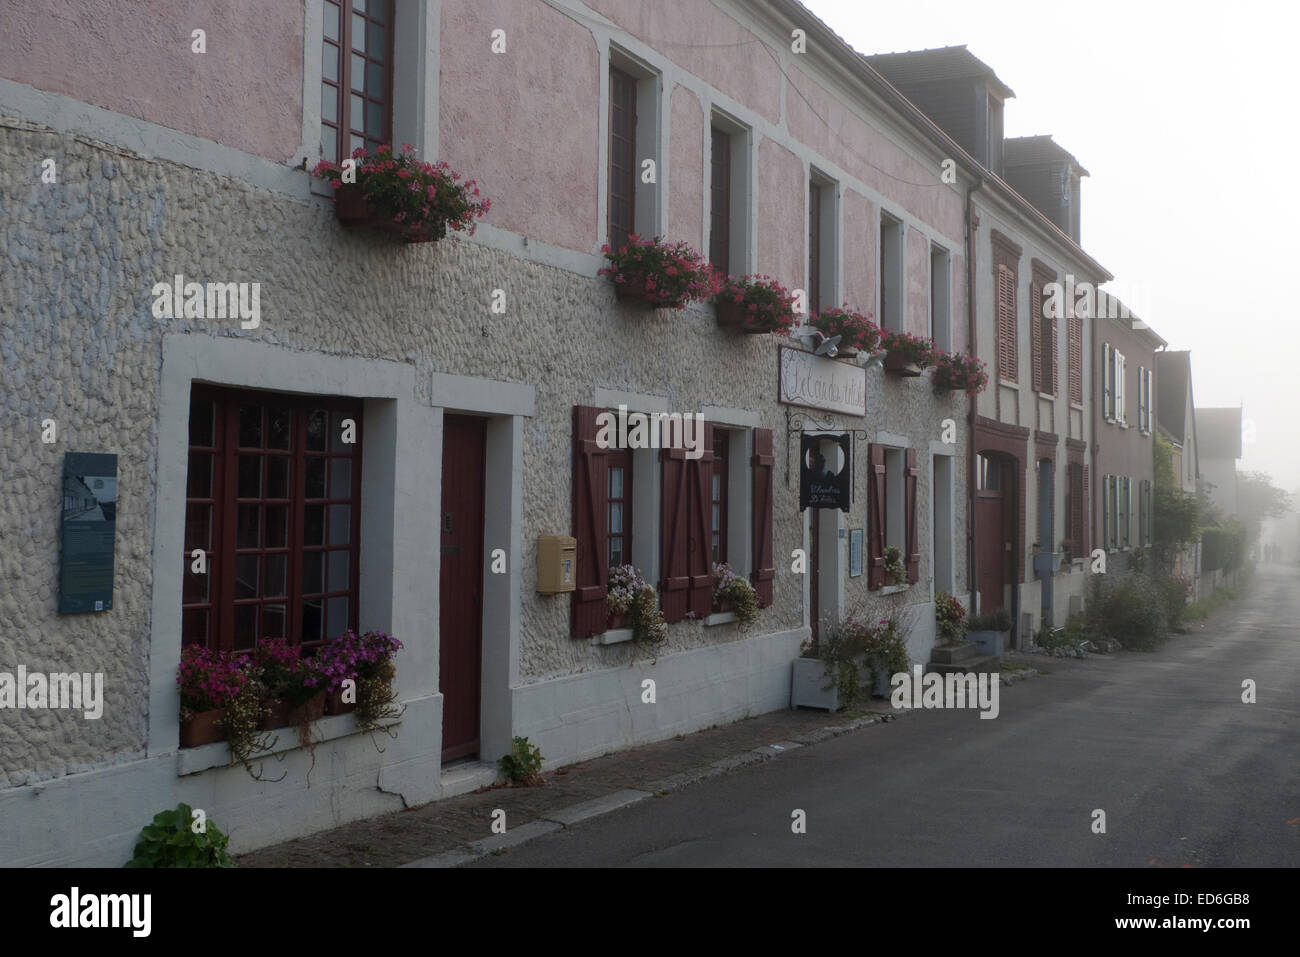 Le Coin des Artistes; chambre d'hôtes accommodation in Giverny, Normandy, France (former grocery store - Stock Image